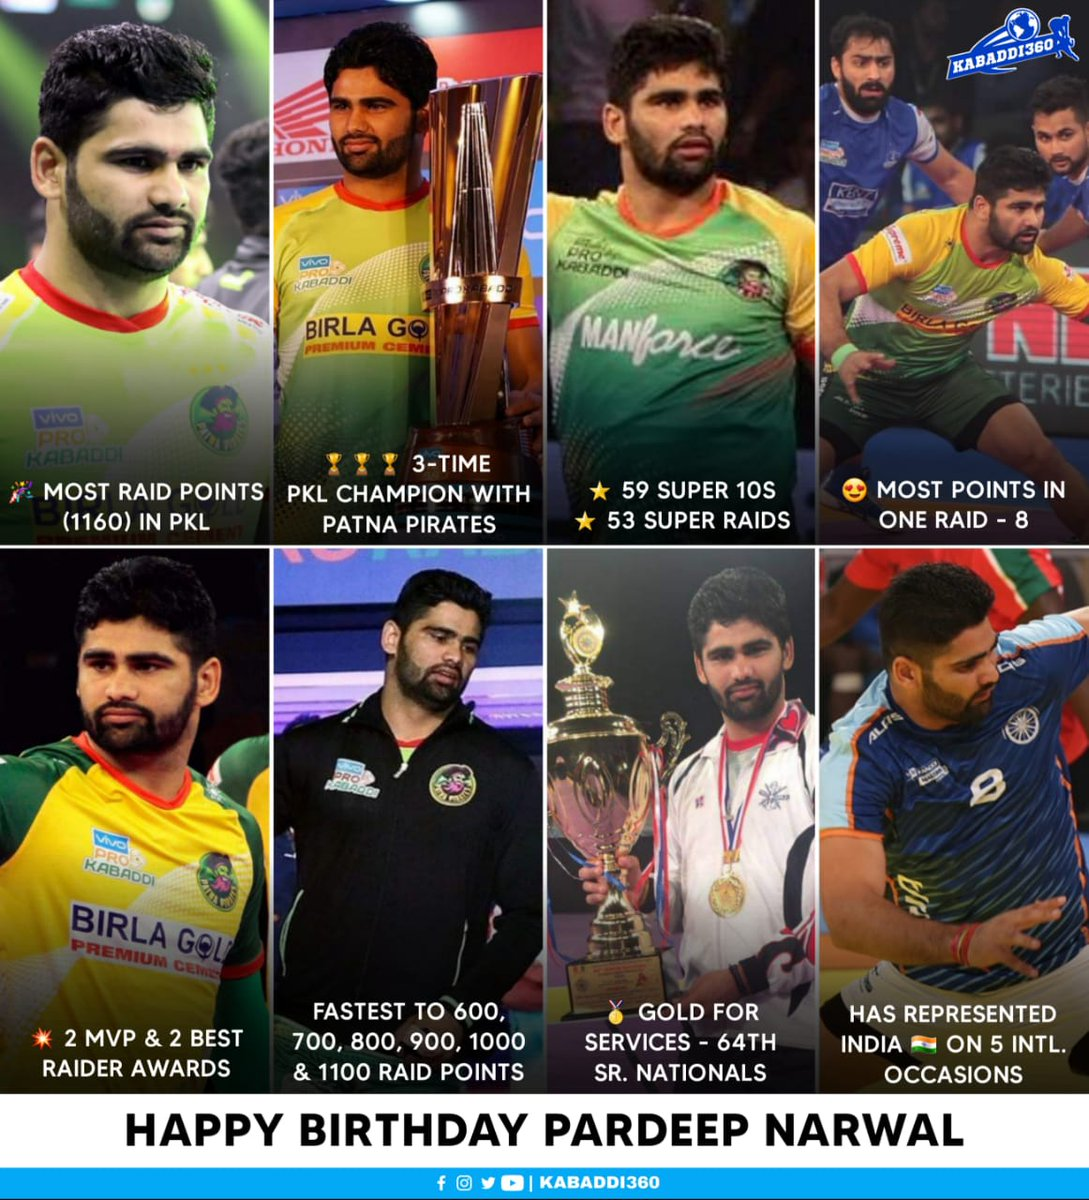 The 'Record Breaker' 👑 turns 24 today 😍 Happiest birthday to the sensational Pardeep Narwal 🥳  #PardeepNarwal #HappyBirthday #HappyBirthdayPardeep #Kabaddi360